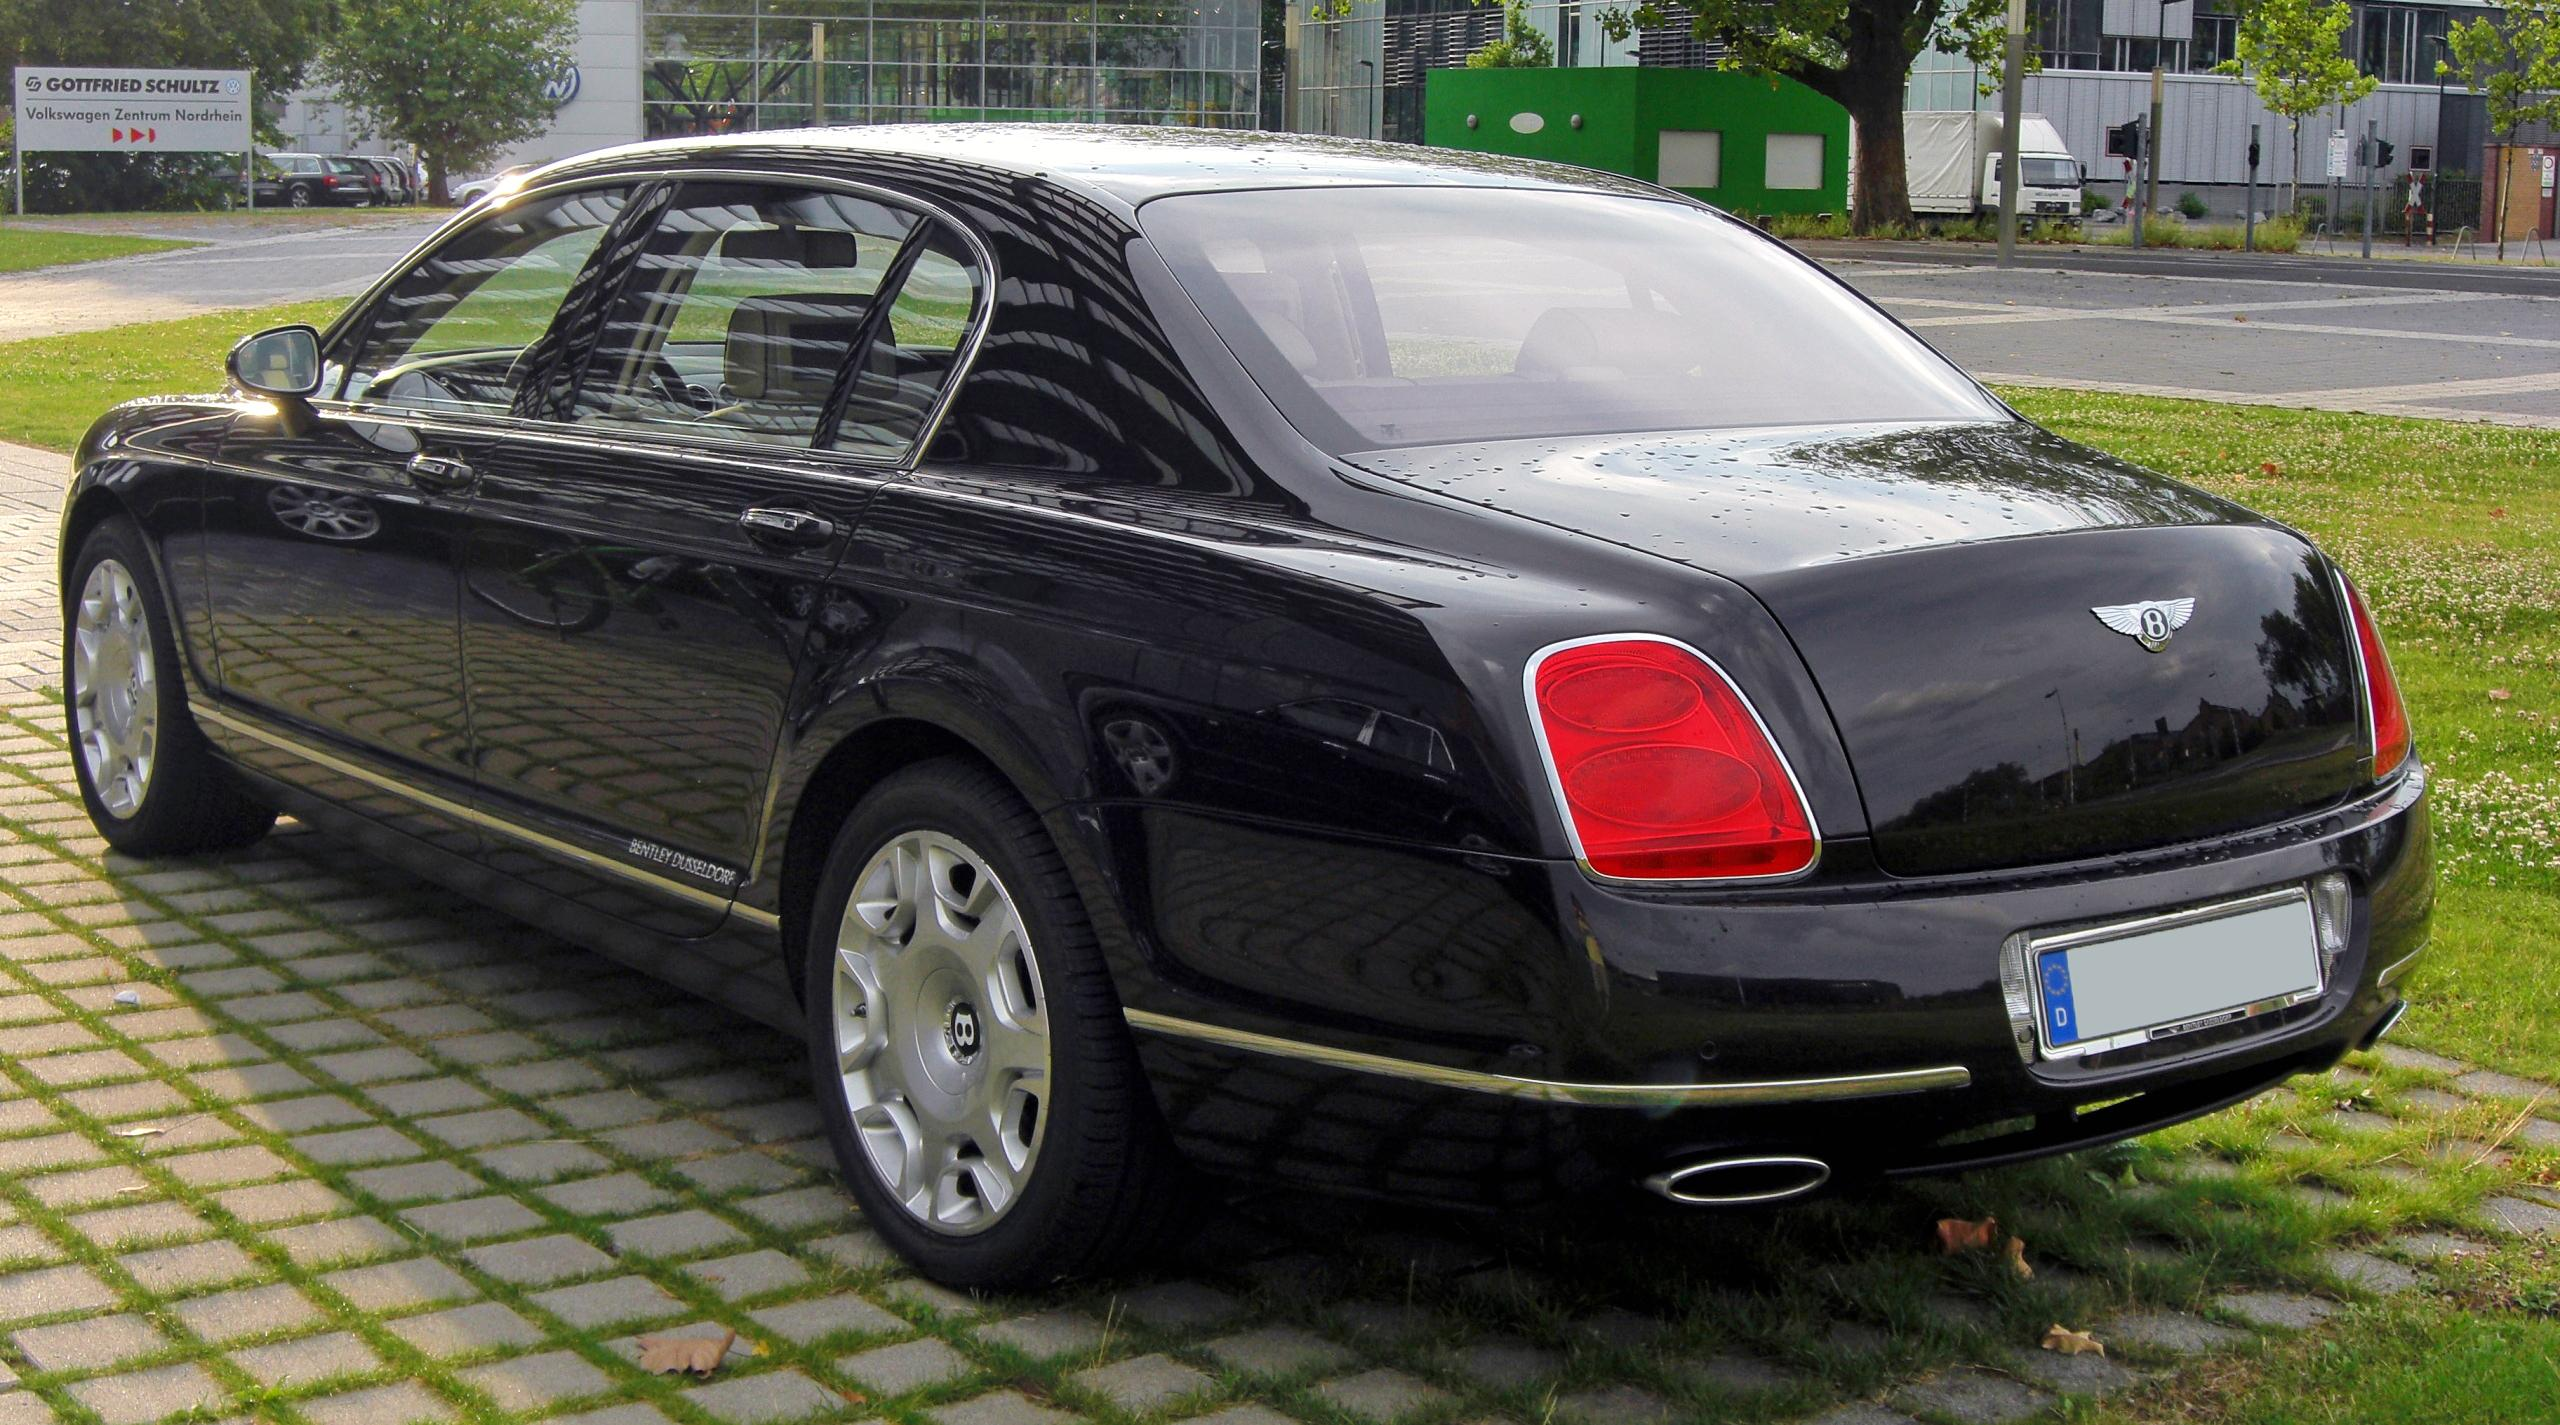 File:Bentley Continental Flying Spur Facelift 20090706 ...